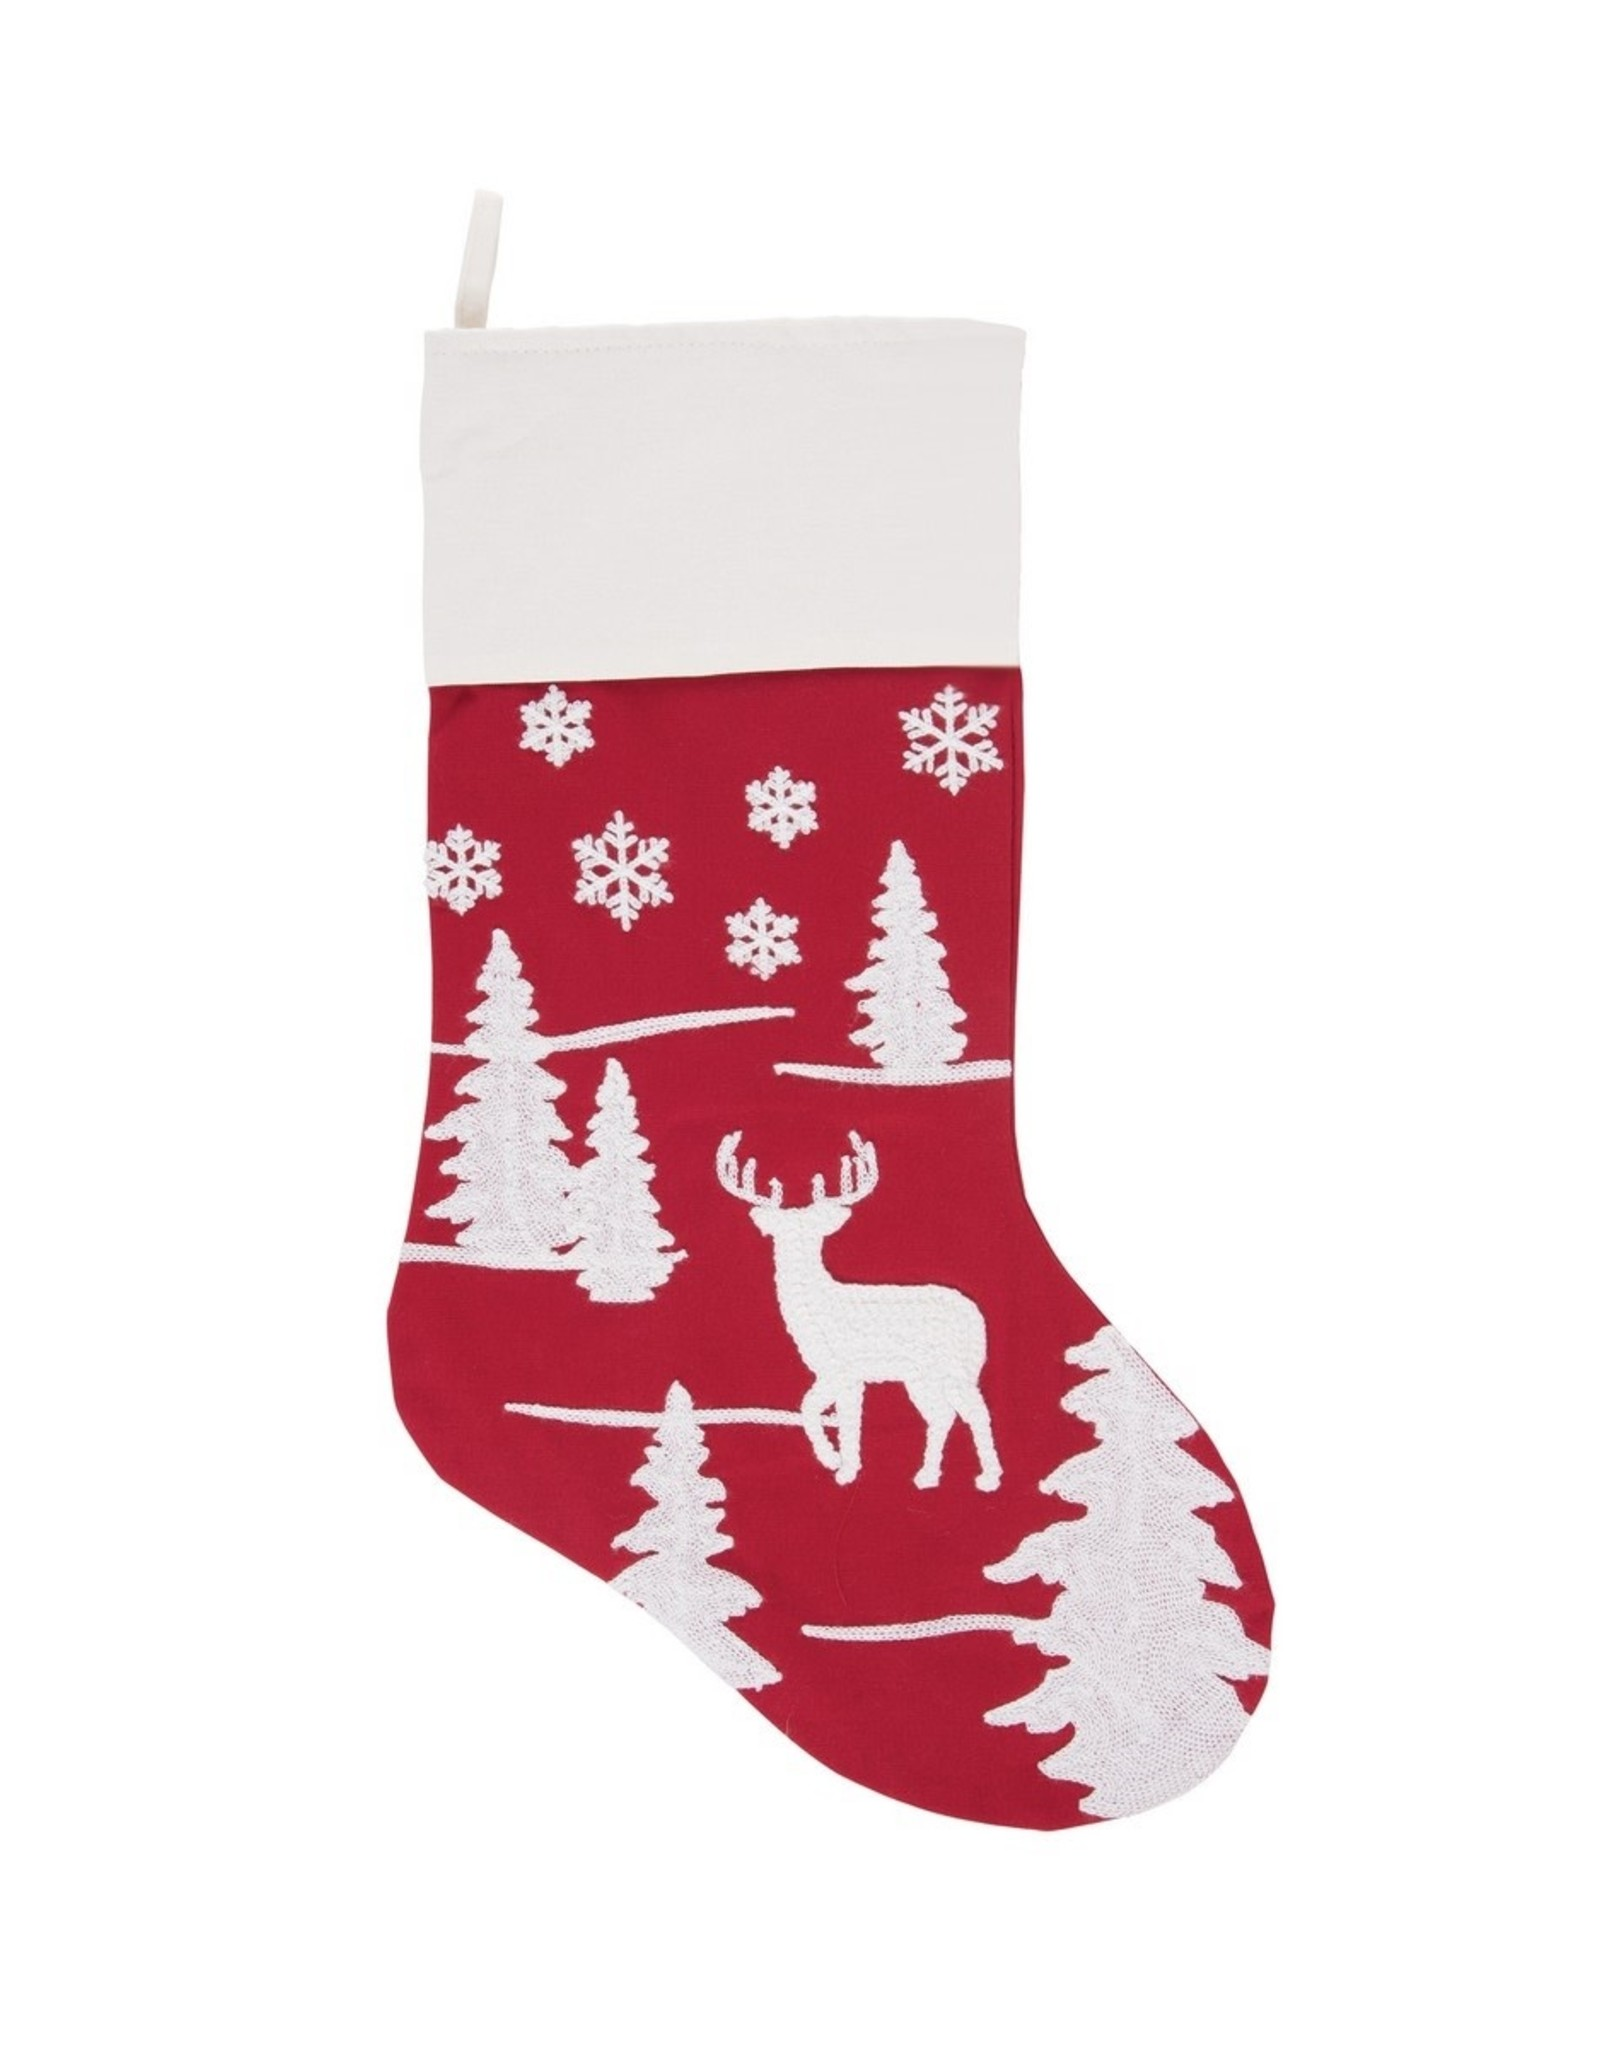 Sleigh Ride Stocking 1